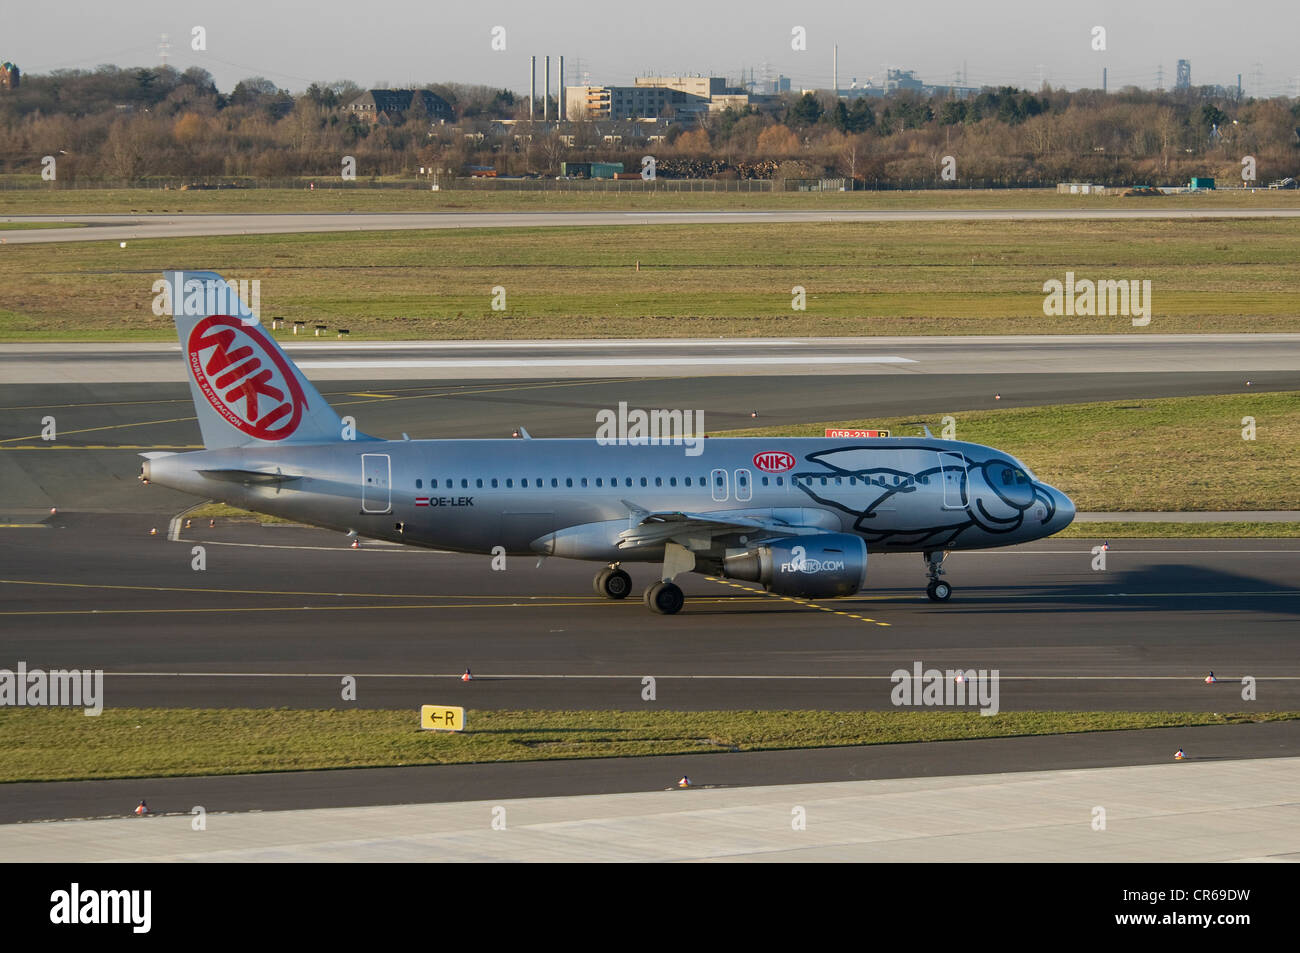 Fly Niki passenger plane, Airbus A 319-112 OE-LEK on the runway of Duesseldorf International Airport, North Rhine - Stock Image